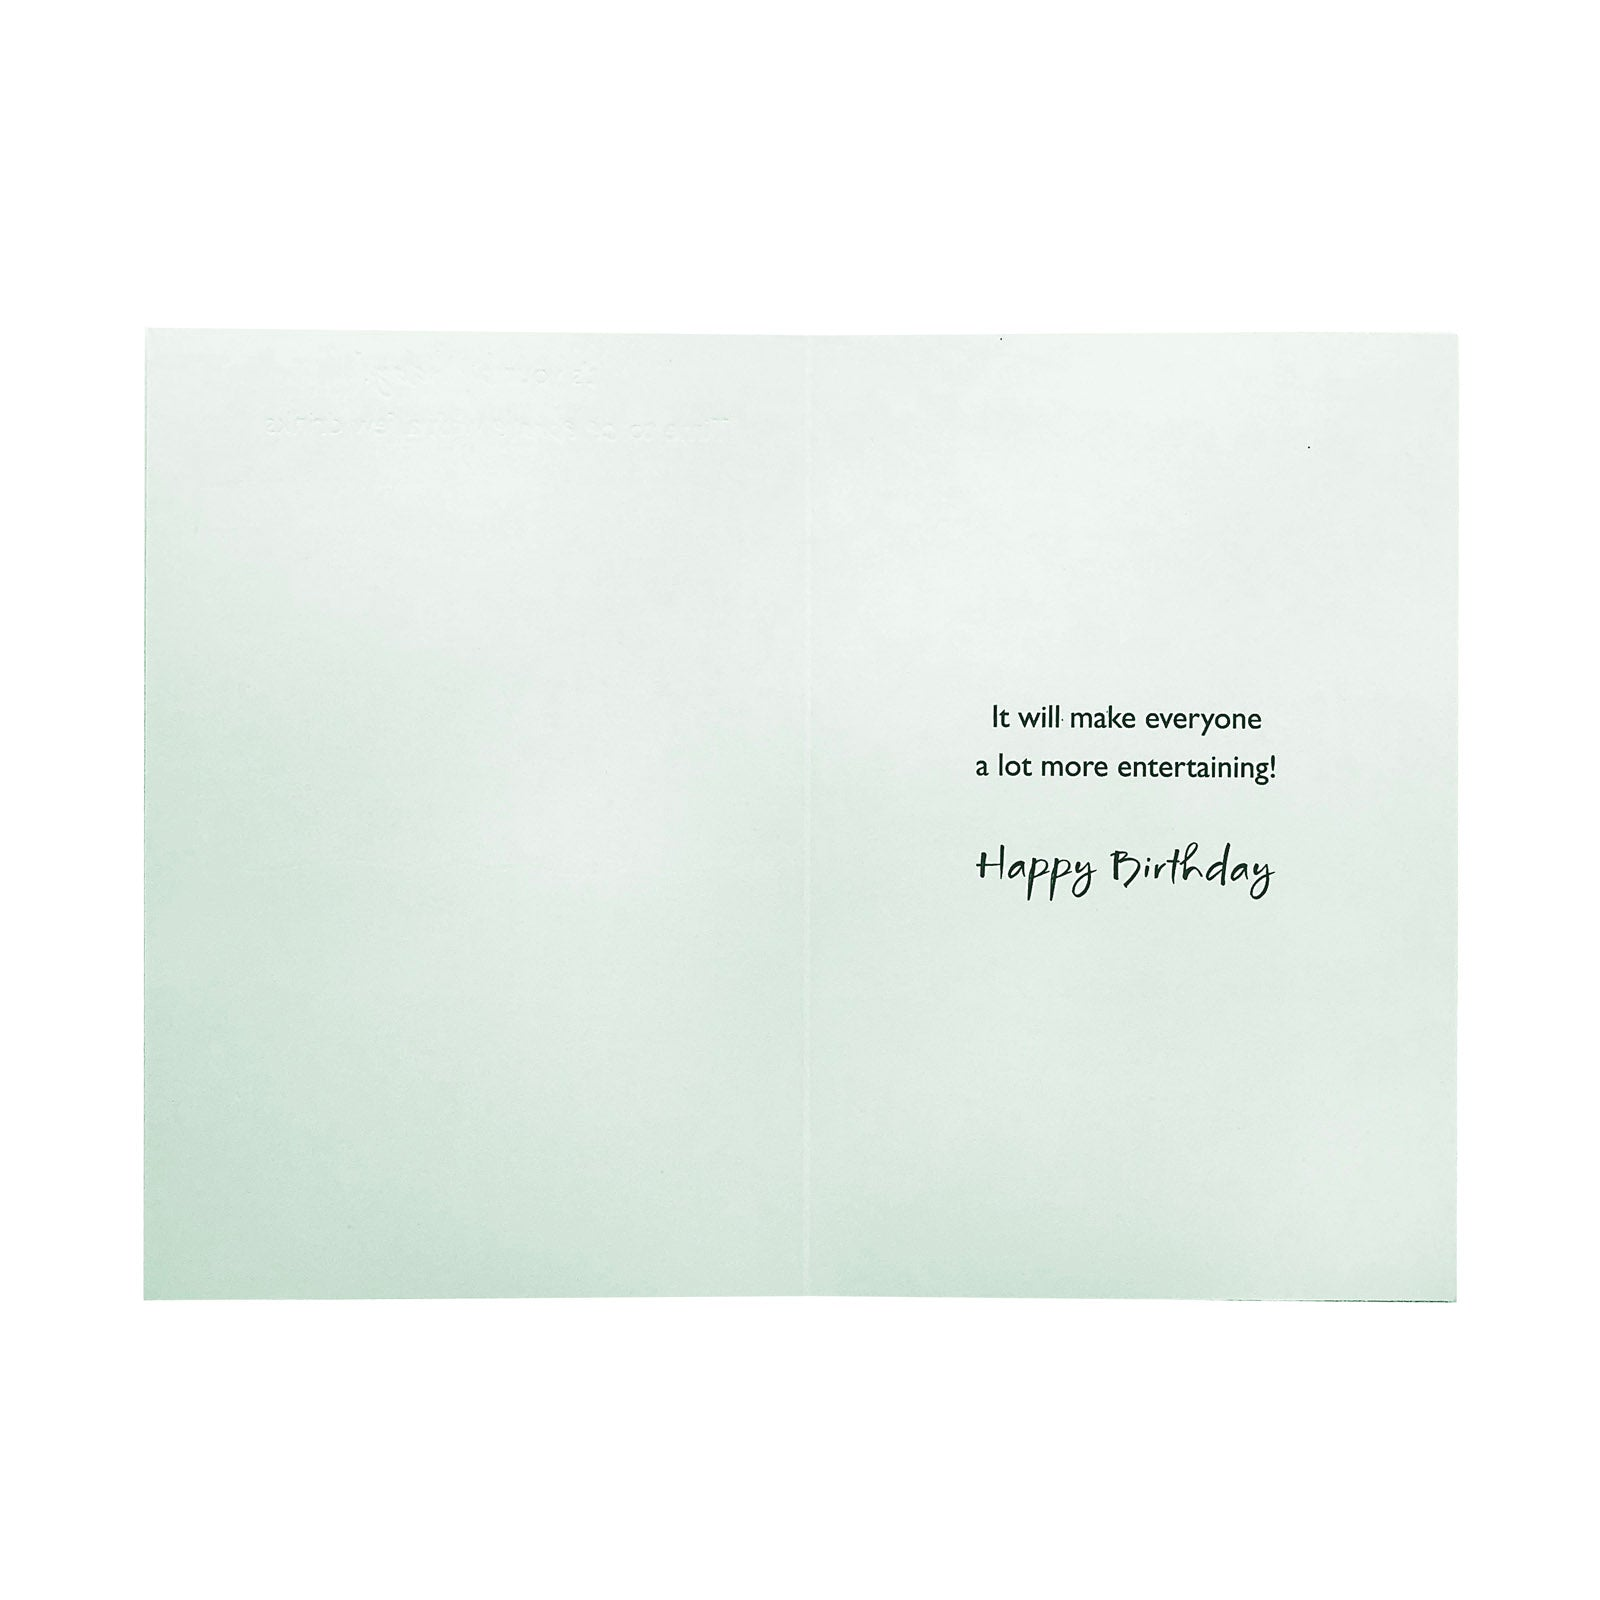 Designer Greetings Birthday Card - Celebrate With A Few Drinks - Party Goers